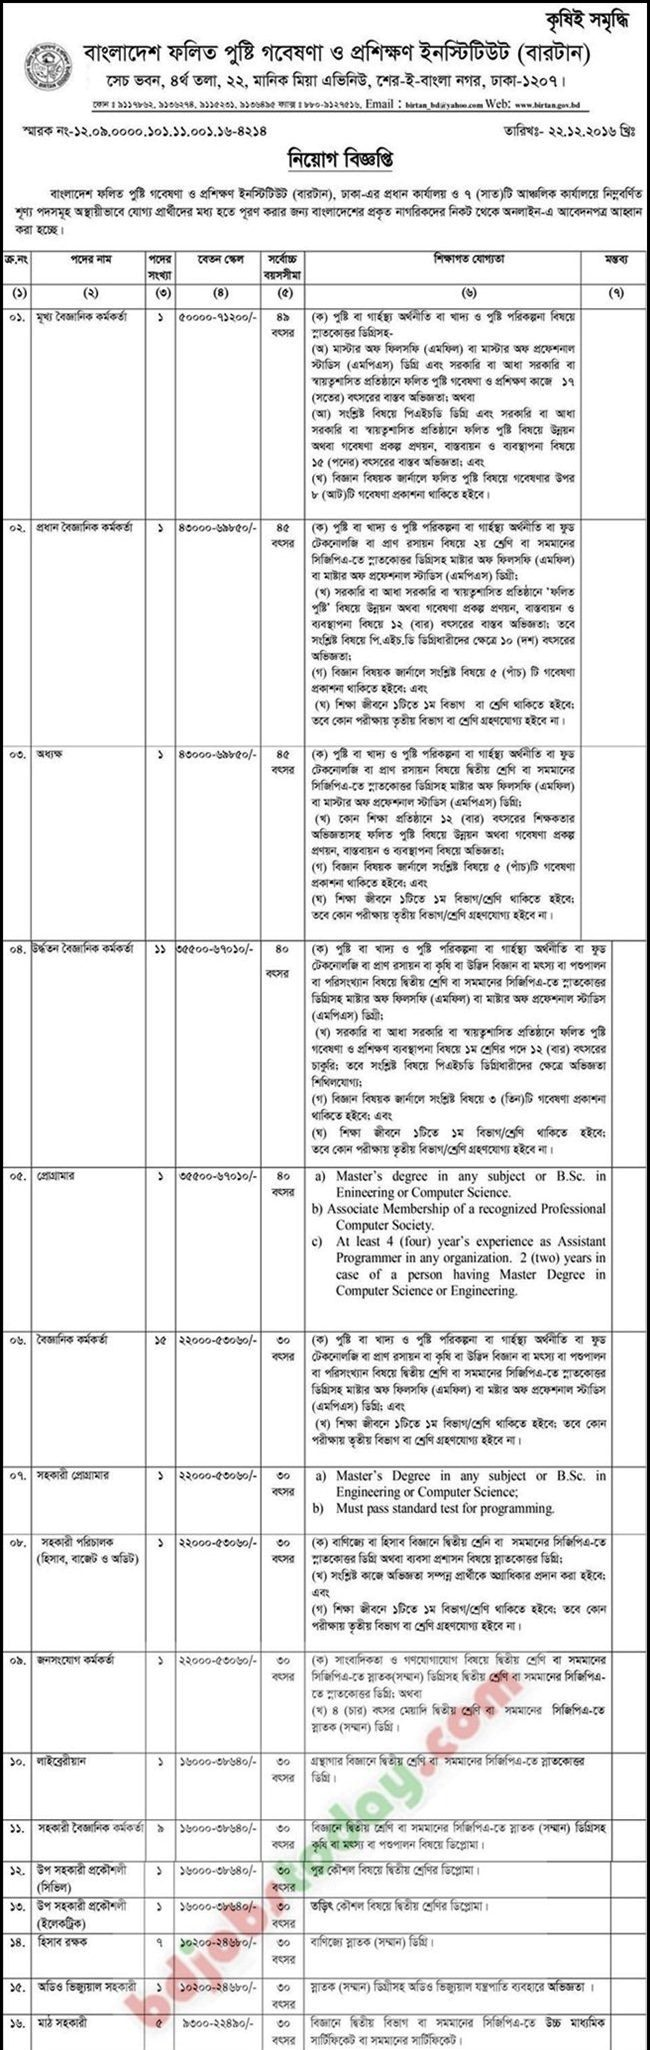 Bangladesh Institute of Research and Training on Applied Nutrition (BIRTAN) jobs